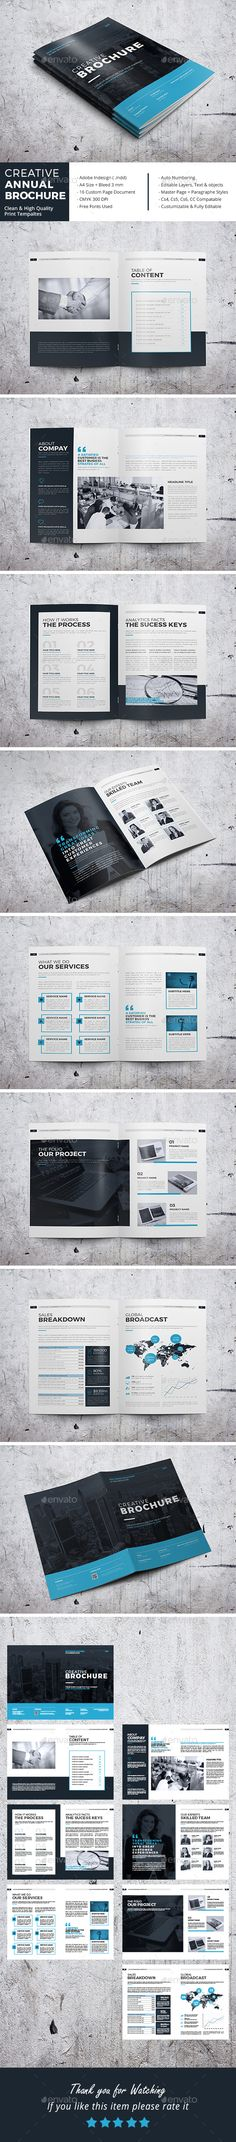 Creative Annual Brochure Template InDesign INDD